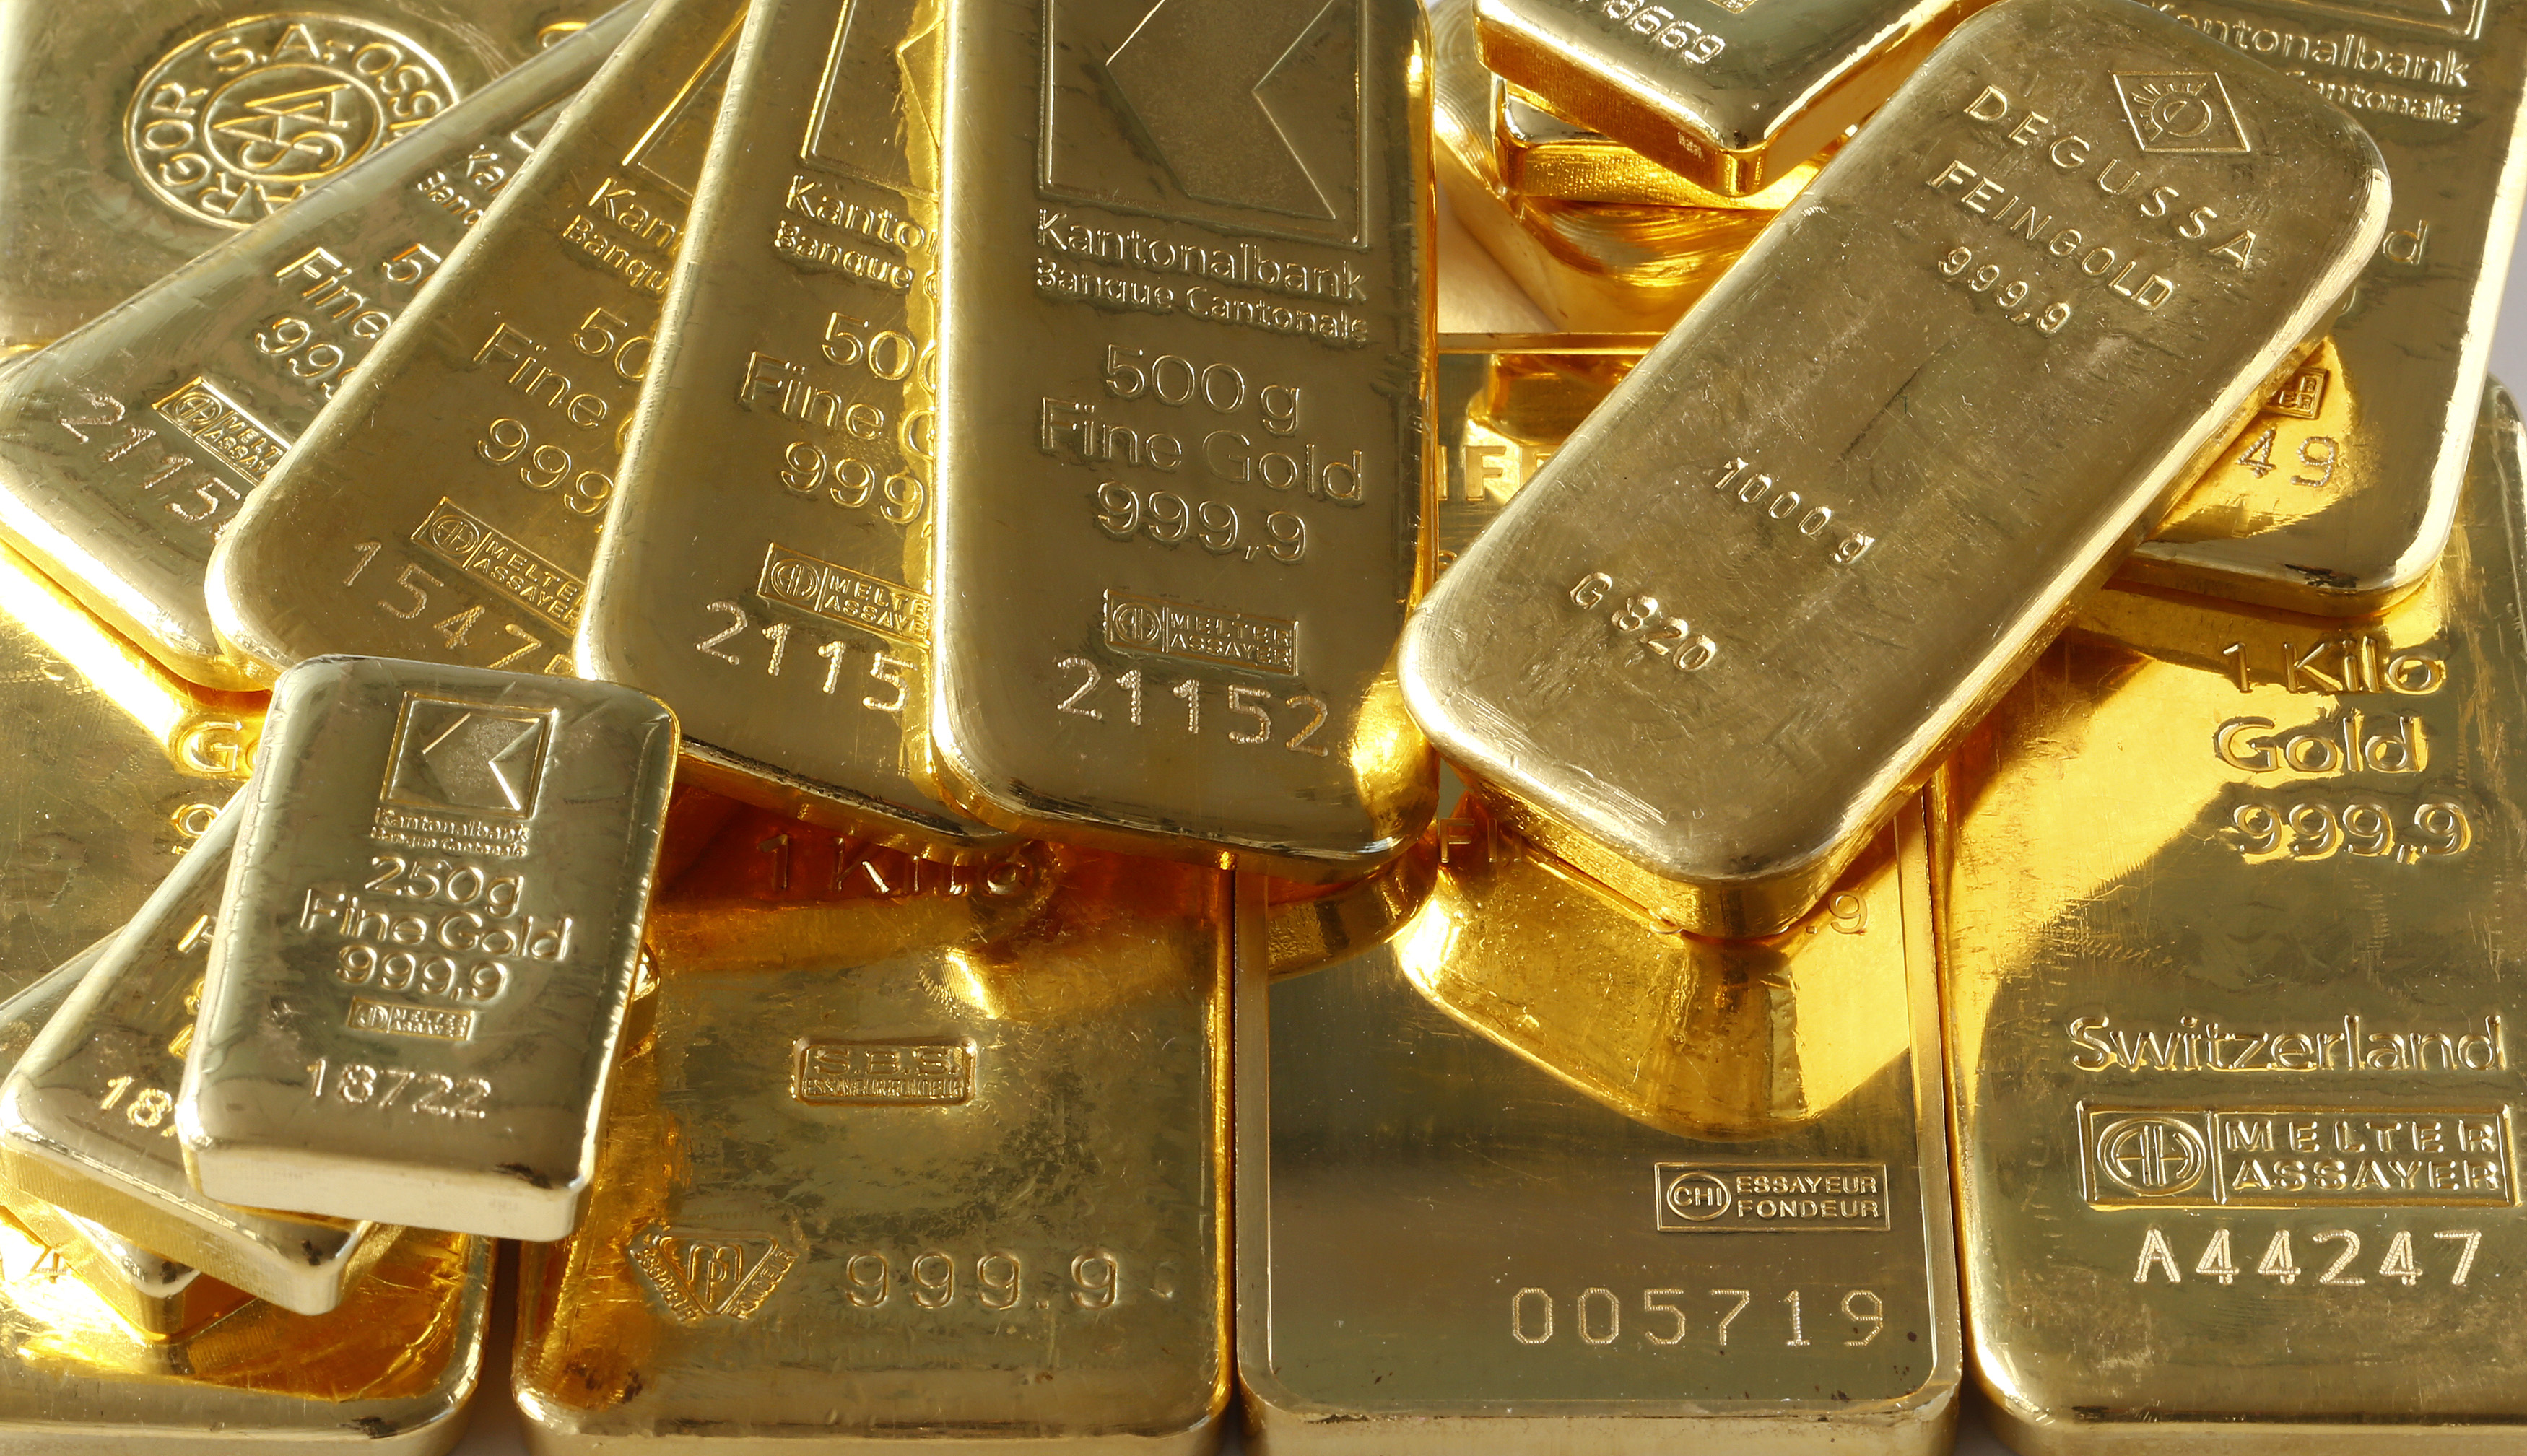 """Gold bars from the vault of a bank are seen in this illustration picture taken in Zurich November 20, 2014. The """"Save our Swiss gold"""" proposal, spearheaded by the right-wing Swiss People's Party (SVP), aims to ban the central bank from offloading its reserves and oblige it to hold at least 20 percent of its assets in gold. The referendum is scheduled for November 30. The SVP argues it would secure a stable Swiss franc. REUTERS/Arnd Wiegmann (SWITZERLAND - Tags: BUSINESS) - RTR4EWKH"""